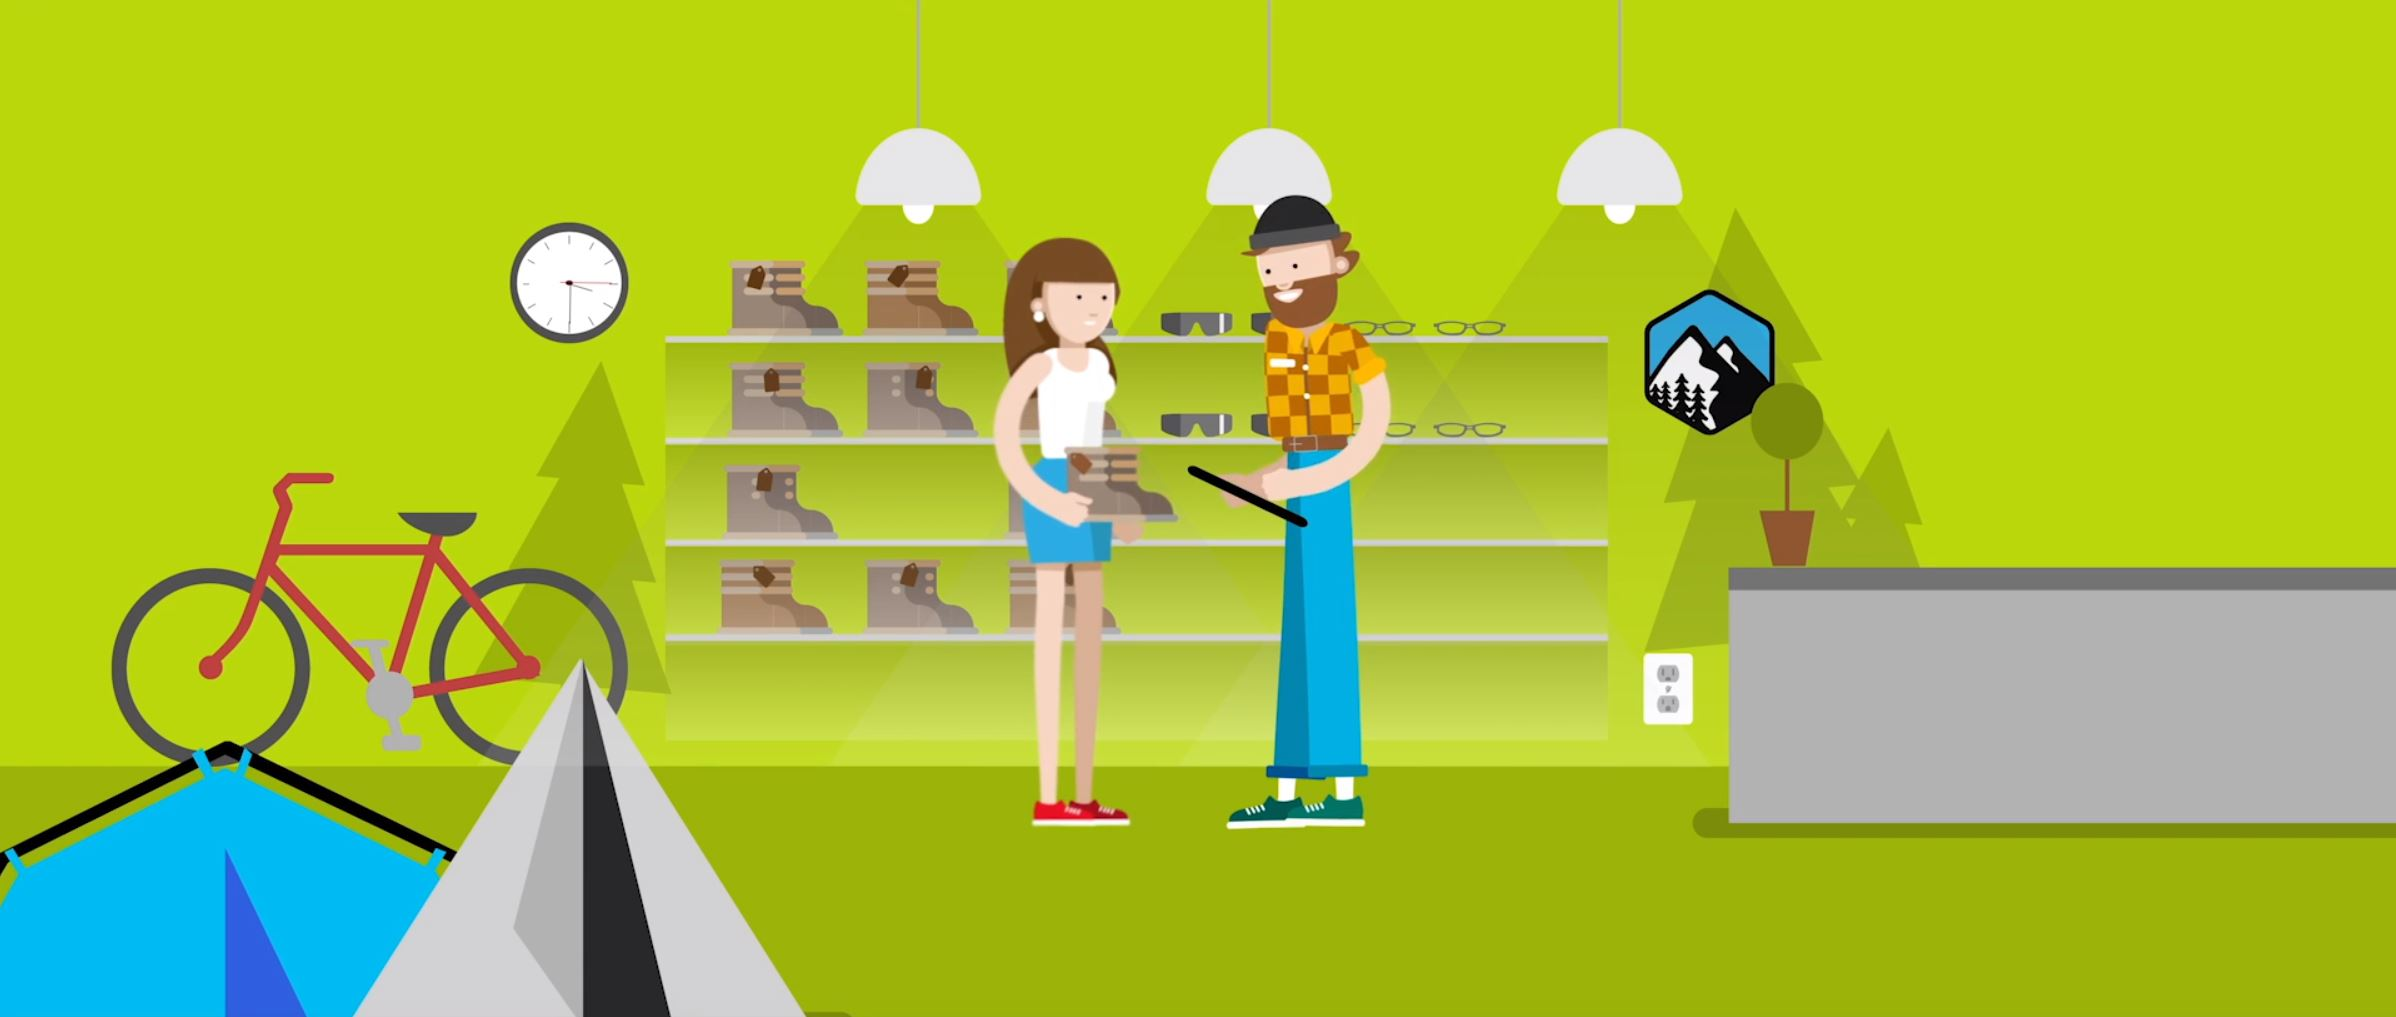 2D character animation image 5 for Microsoft Innovation - retail project